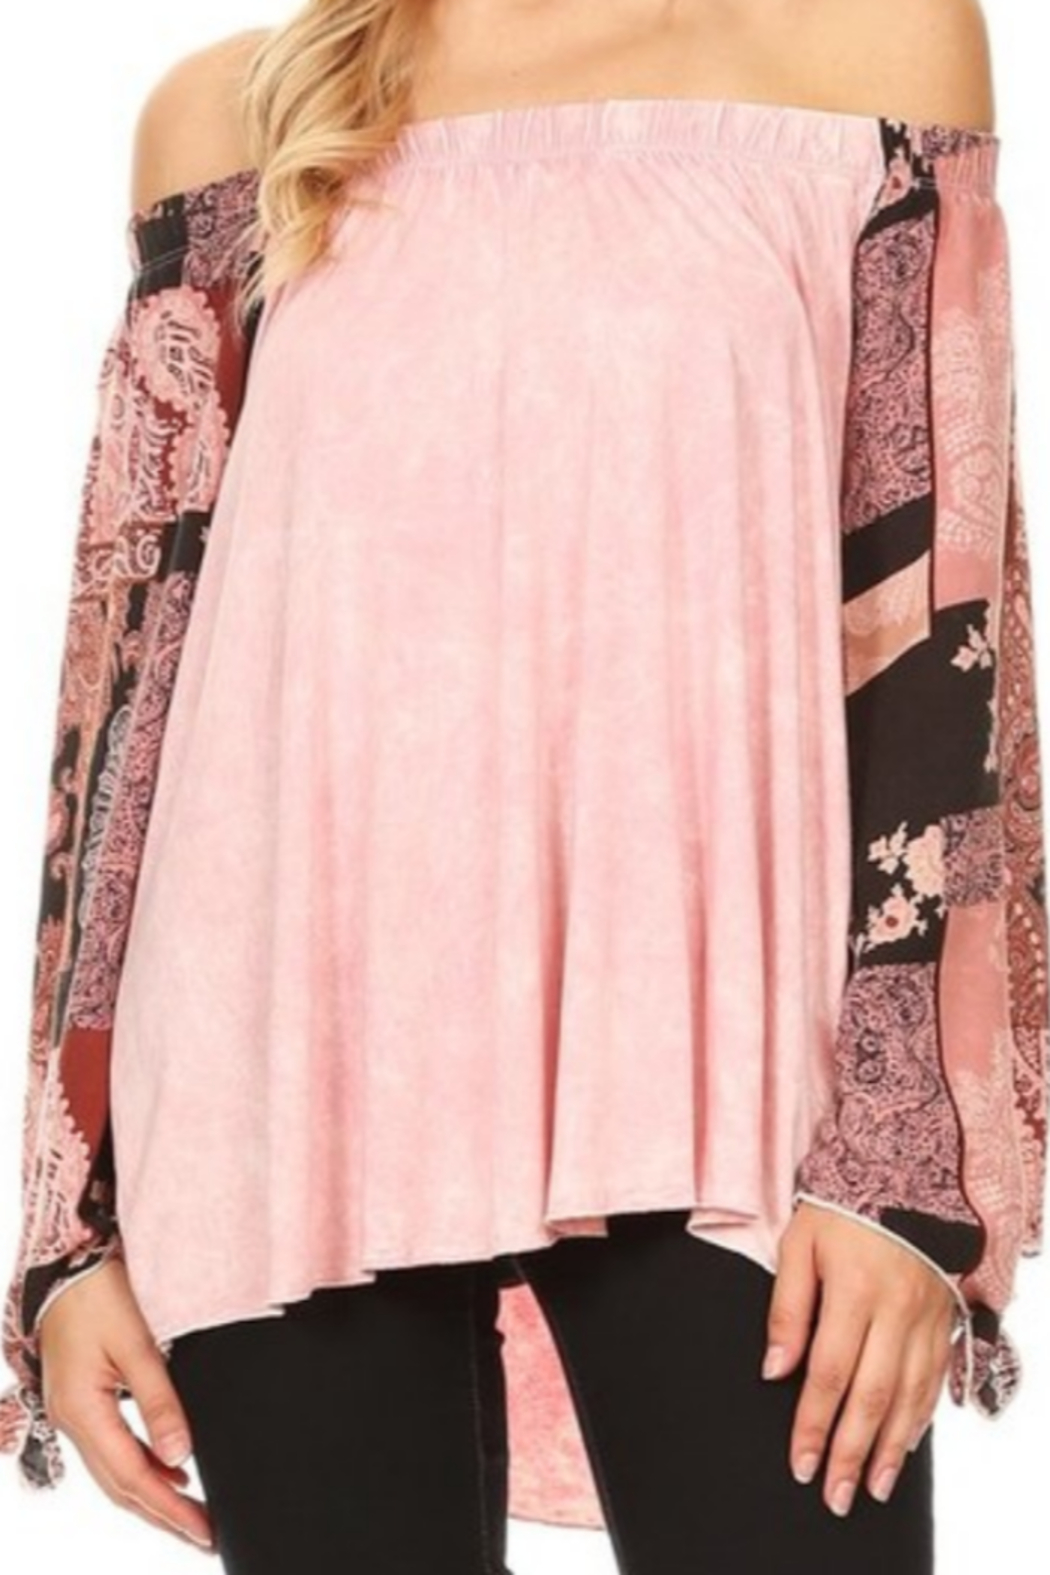 DiJore Dusty Pink Top with Flowing Vintage Print Sleeve - Main Image